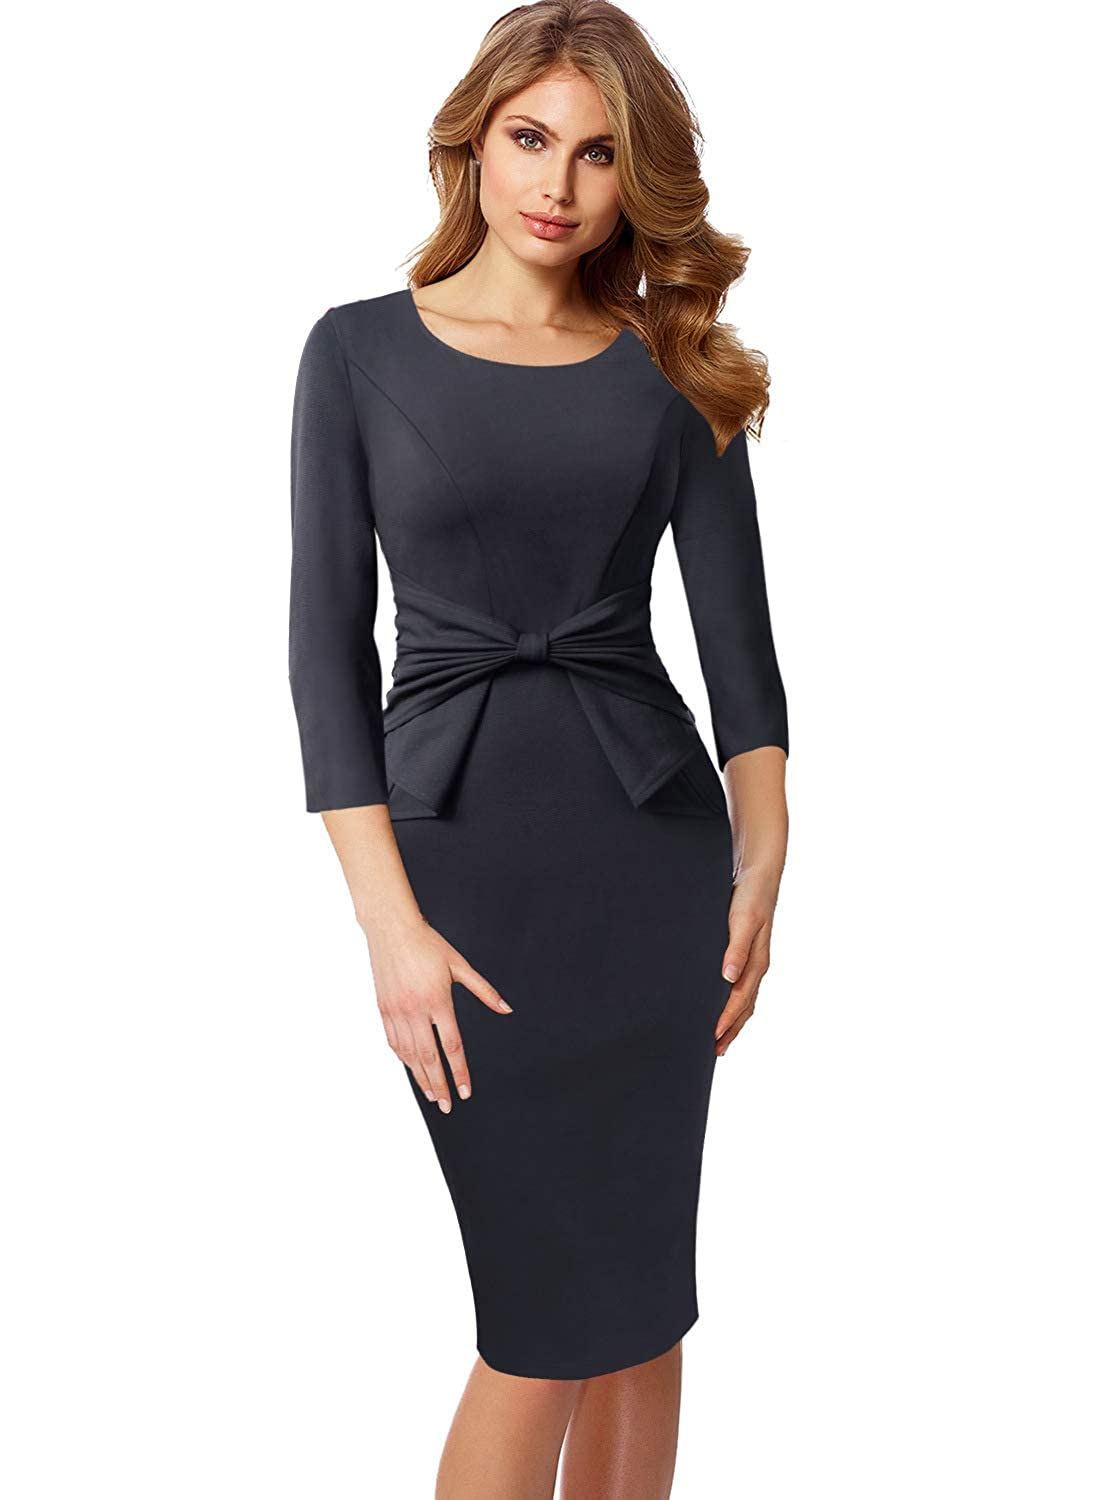 Grey 3 4 Sleeve VFSHOW Womens Pleated Bow Wear to Work Business Office Church Sheath Dress